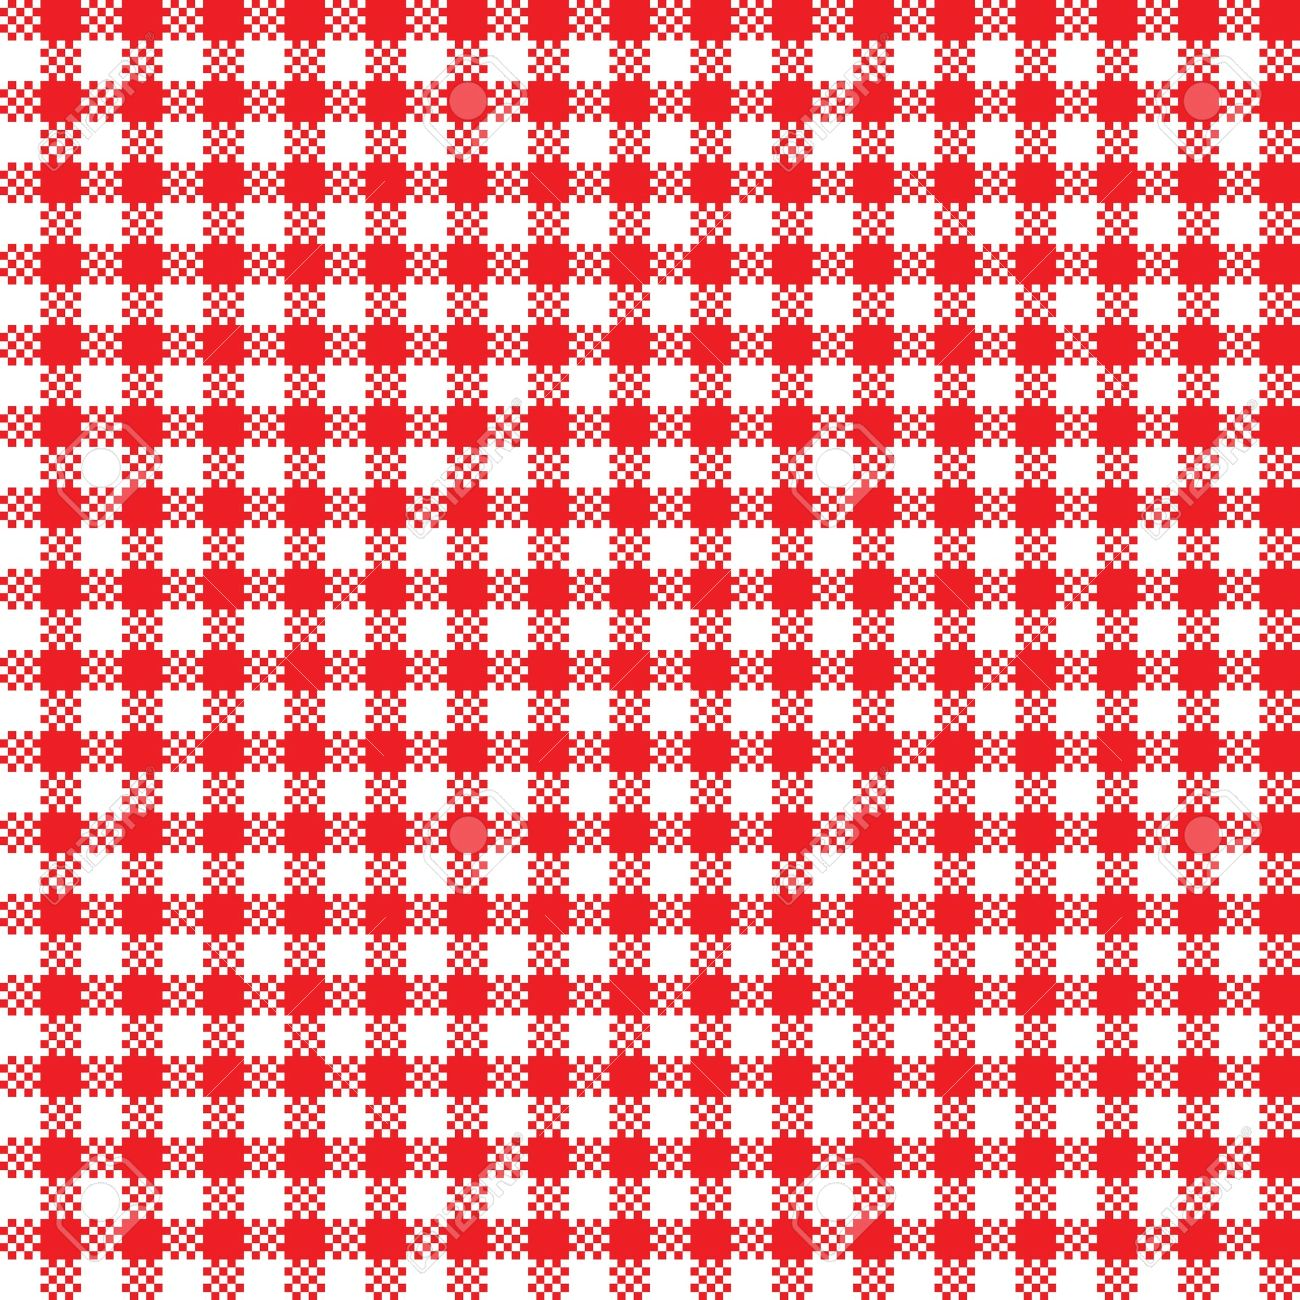 Red White Tablecloth Pattern Seamless Background Stock Vector   19907721